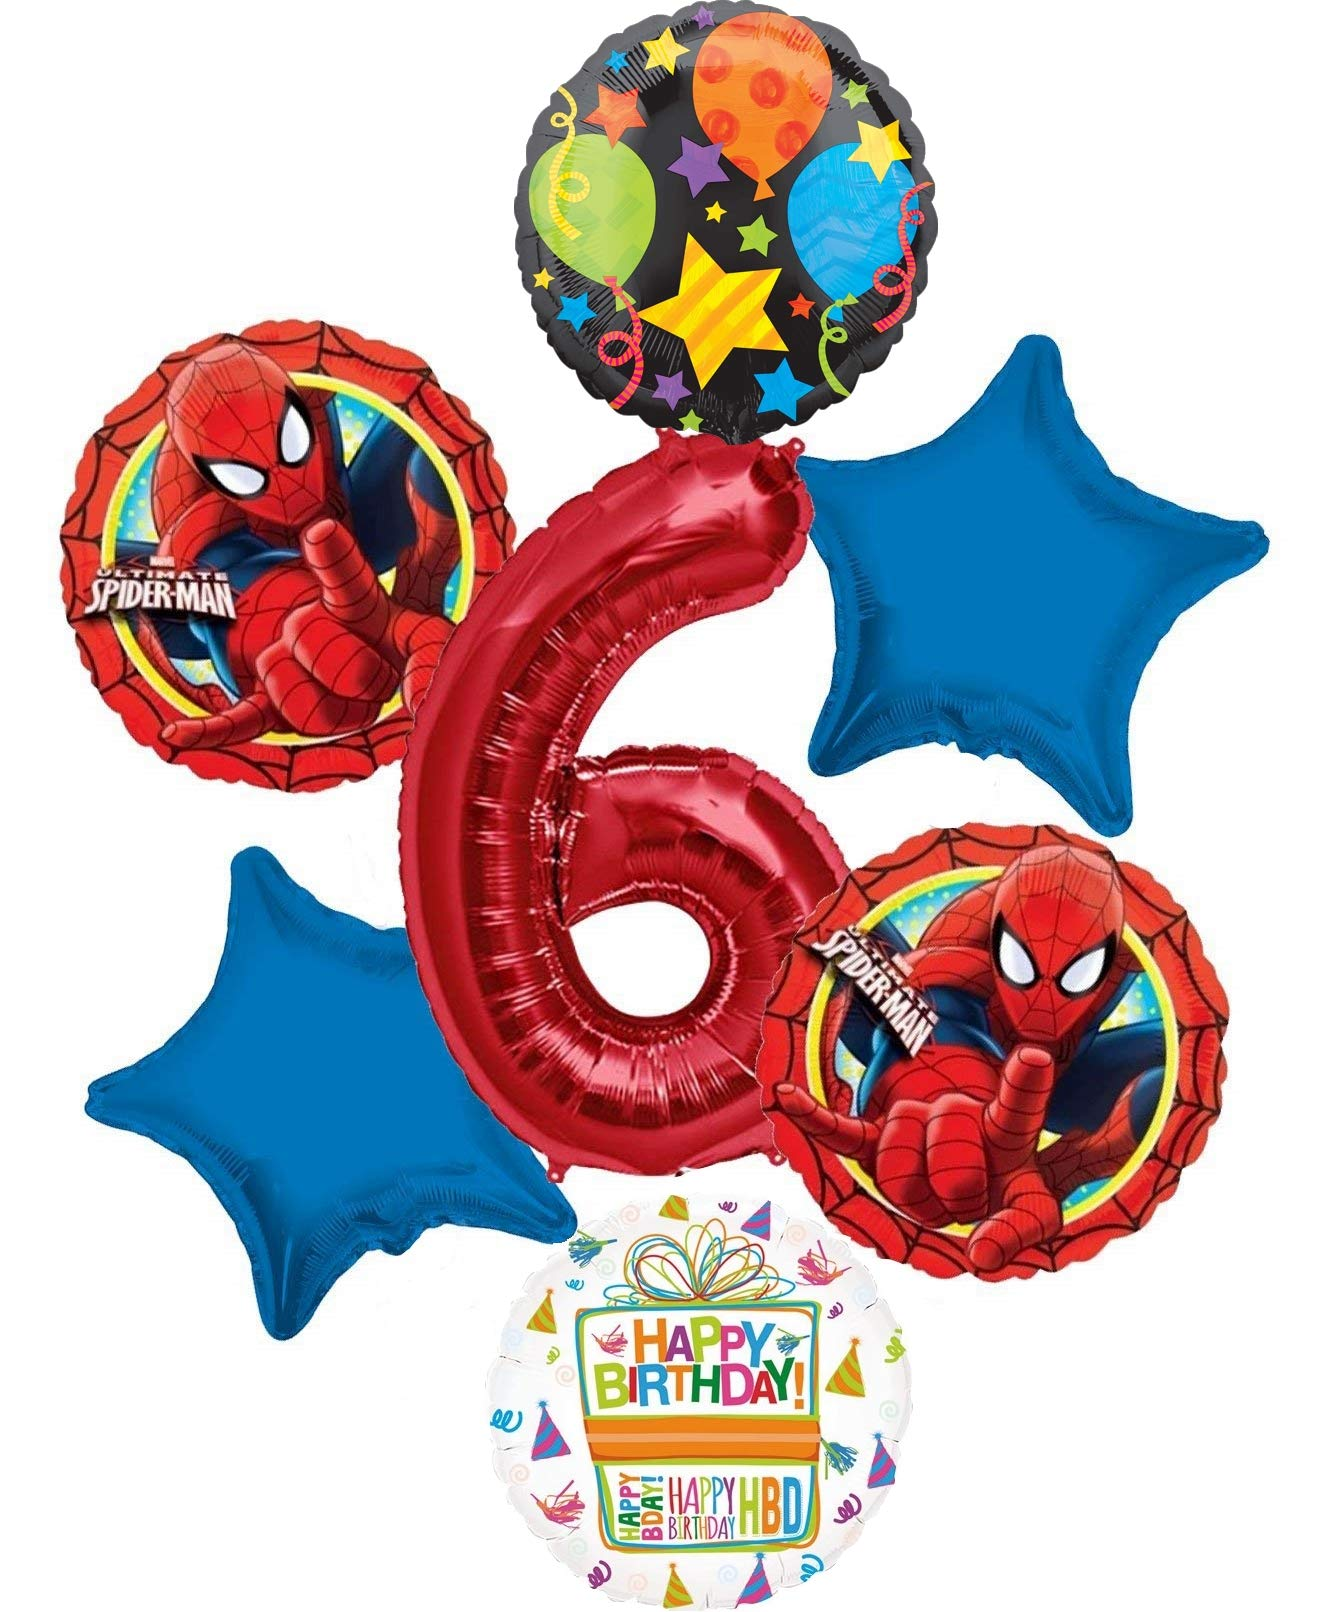 Mayflower Products Baseball 6th Birthday Party Supplies and Balloon Bouquet Decorations